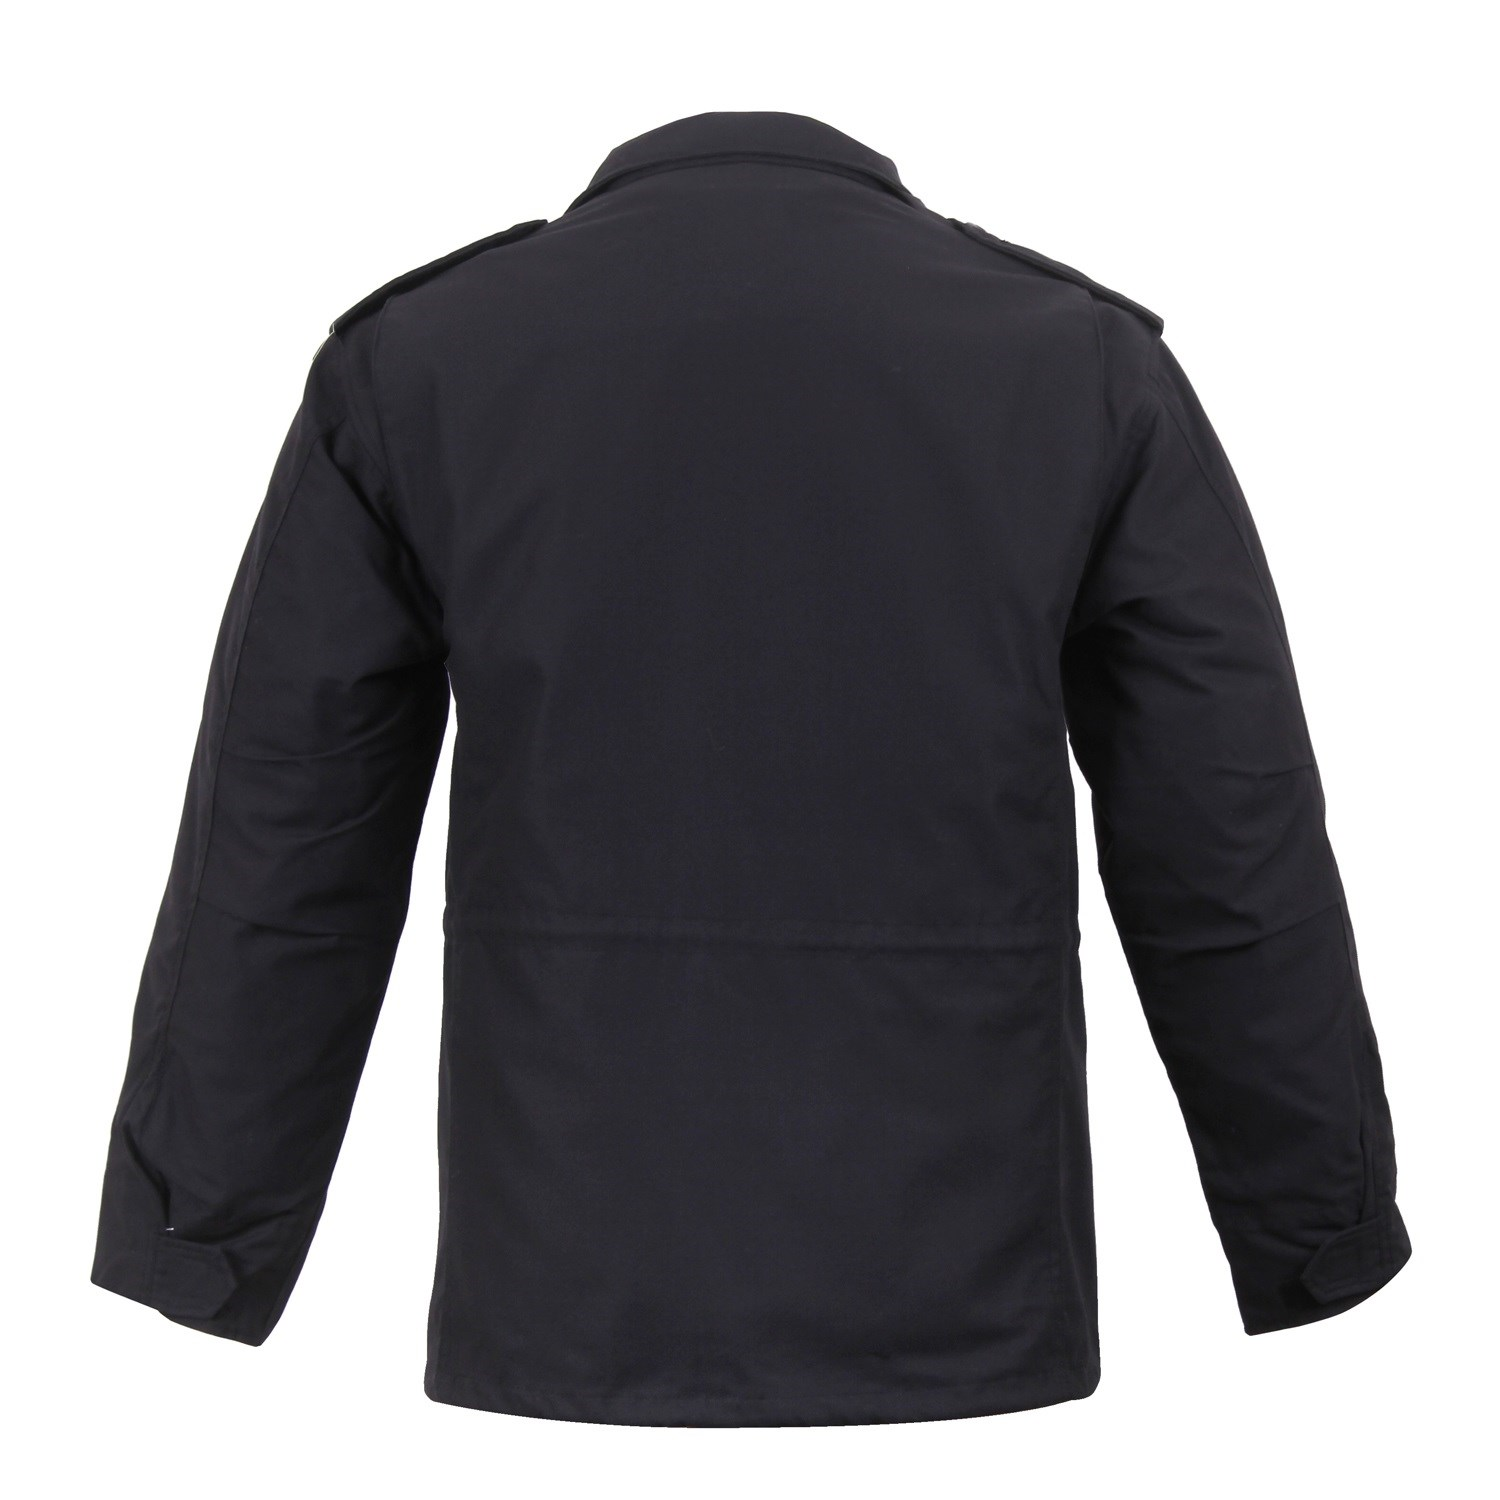 U.S. M65 jacket with liner BLACK ROTHCO 8444 L-11